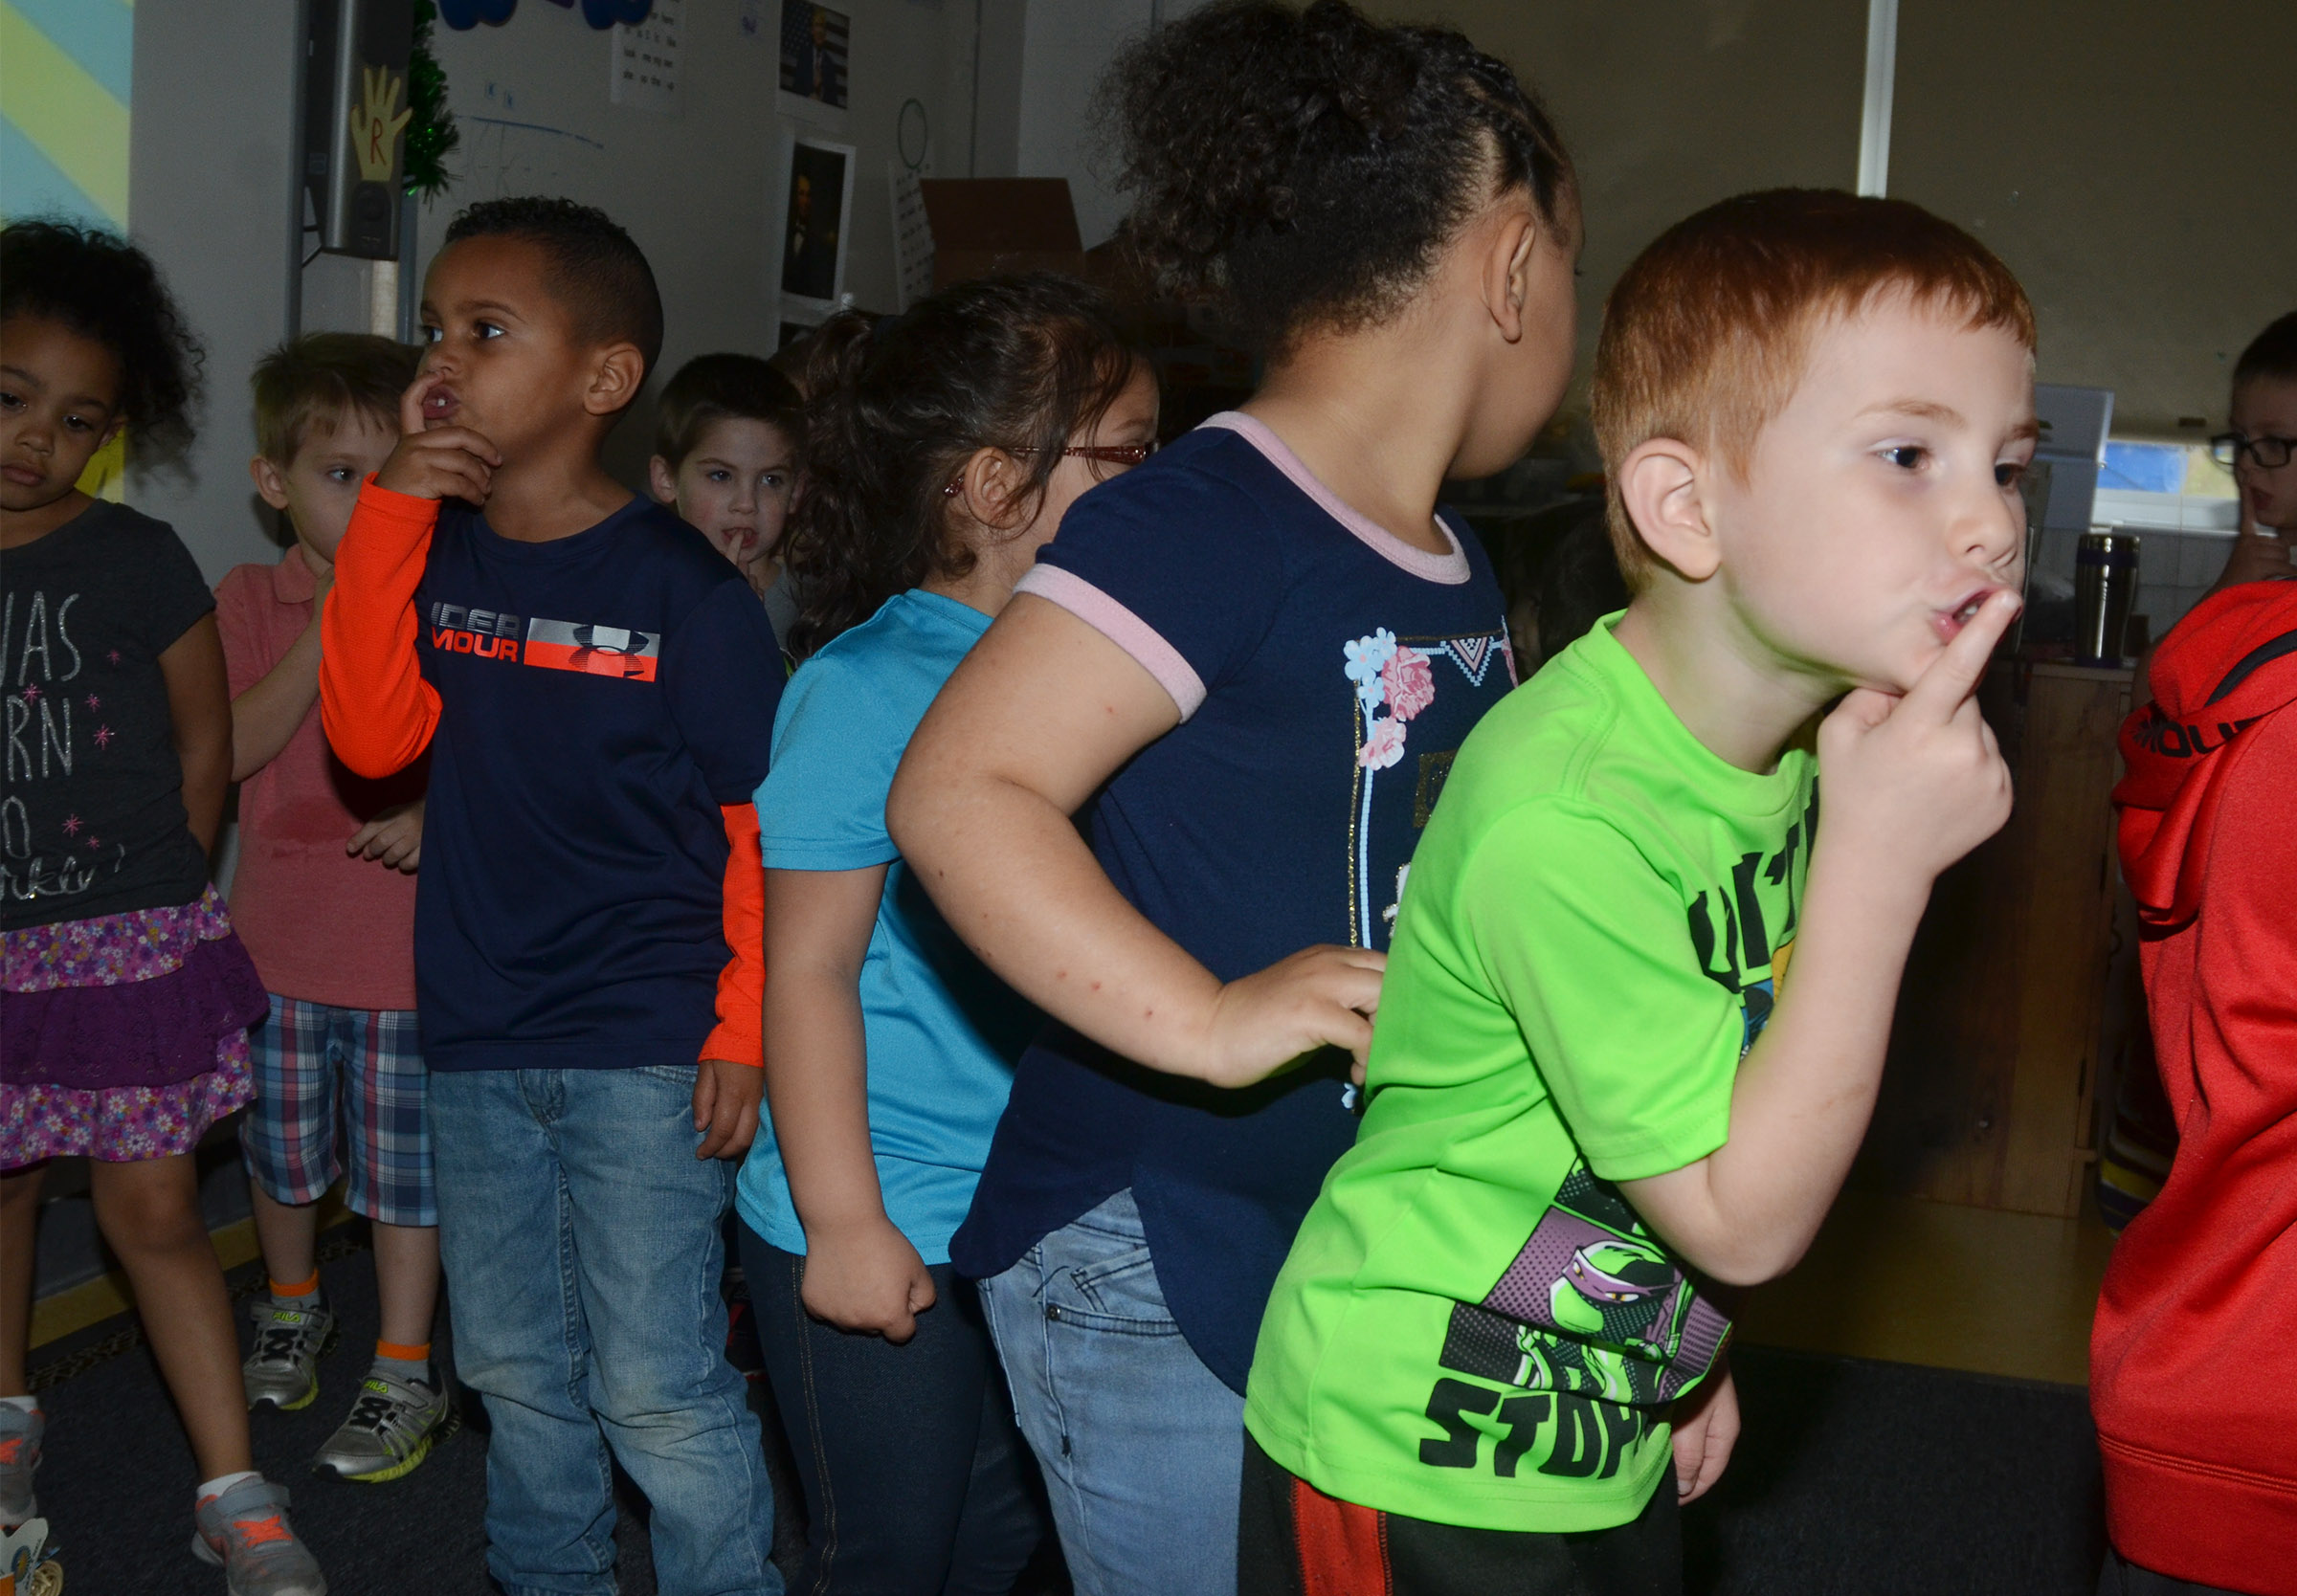 CES preschool student Kennon Dotson and his classmates dance in a circle as they are asked to be quiet.